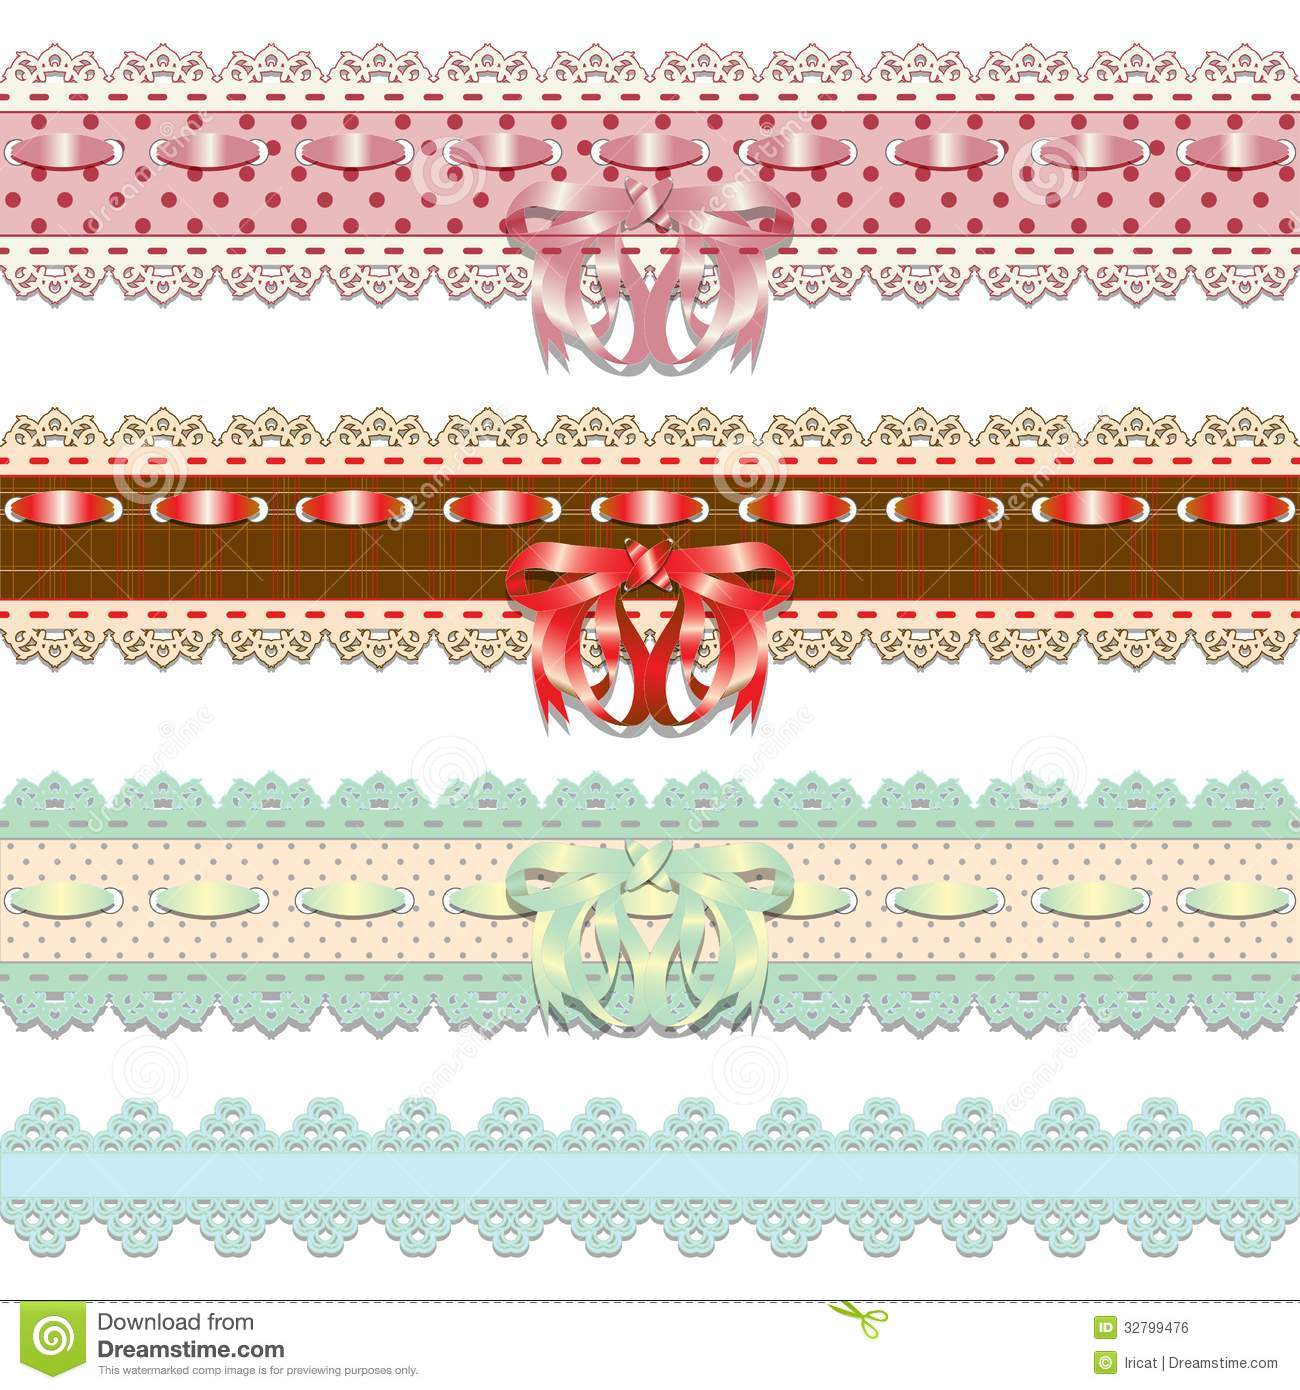 N Line further Subframe besides Watch additionally Royalty Free Stock Image Lace Ribbons Set Colored Bow Vector Illustration Image32799476 as well 404831453981562977. on golf cart frame plans